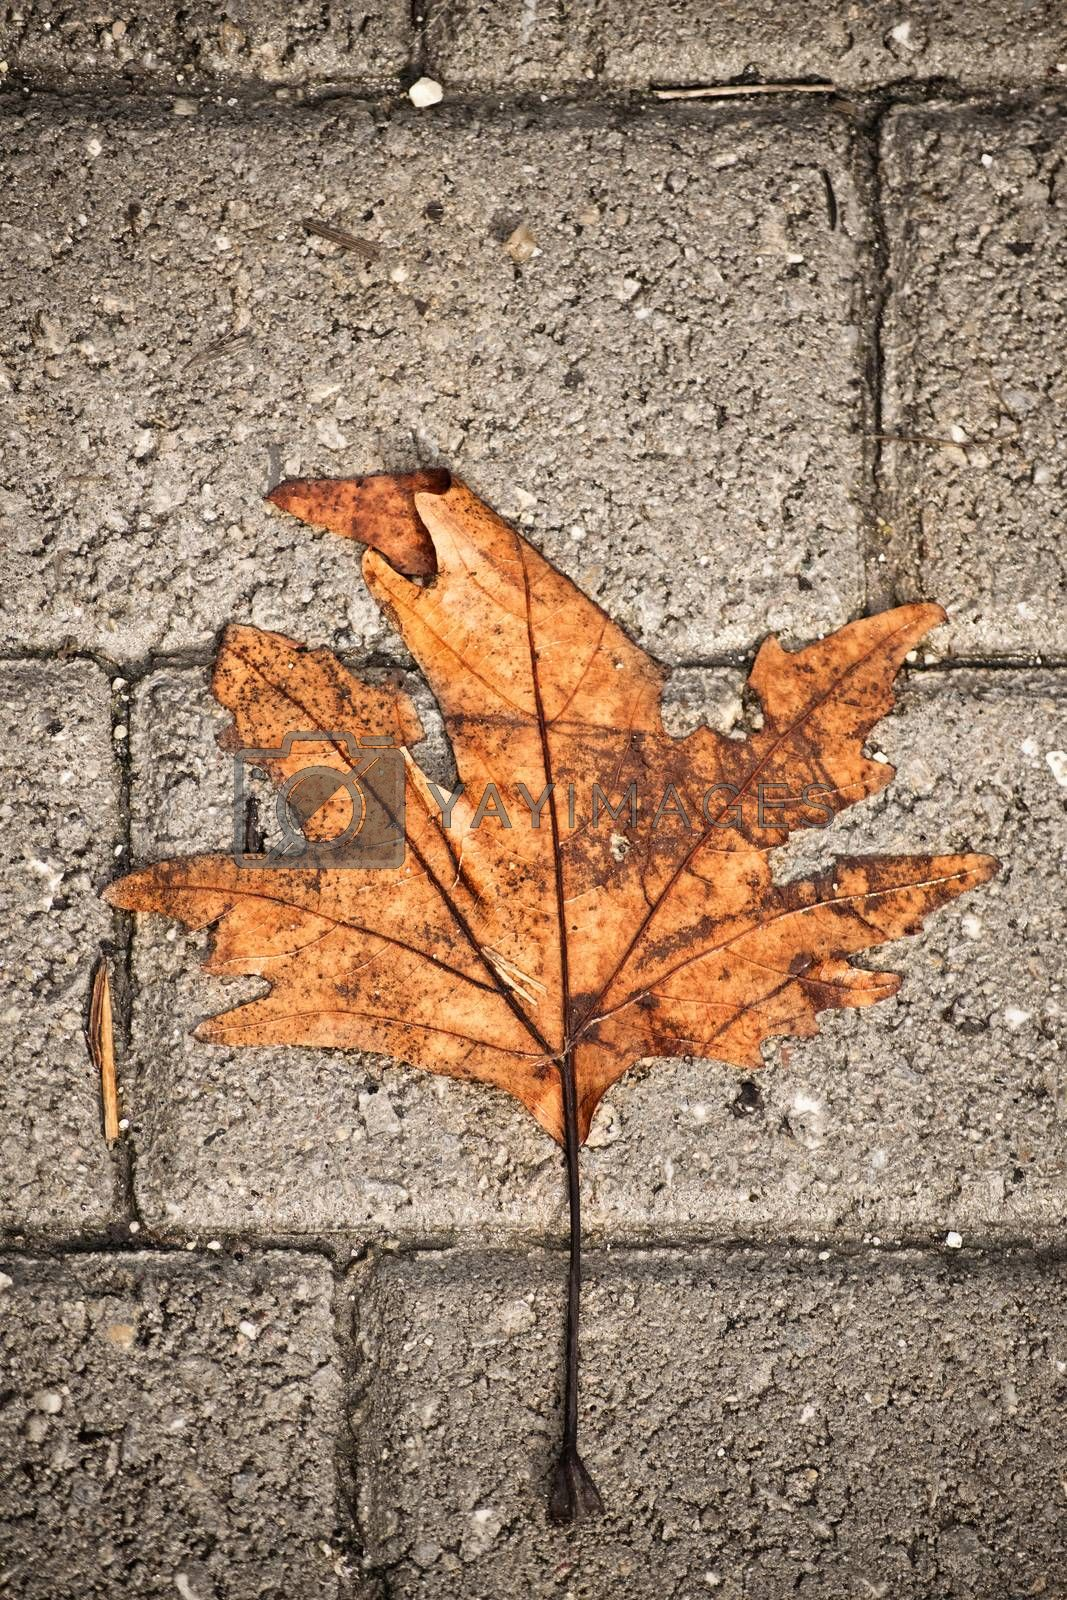 Withered maple leaf fallen over grey pavement concrete blocks.